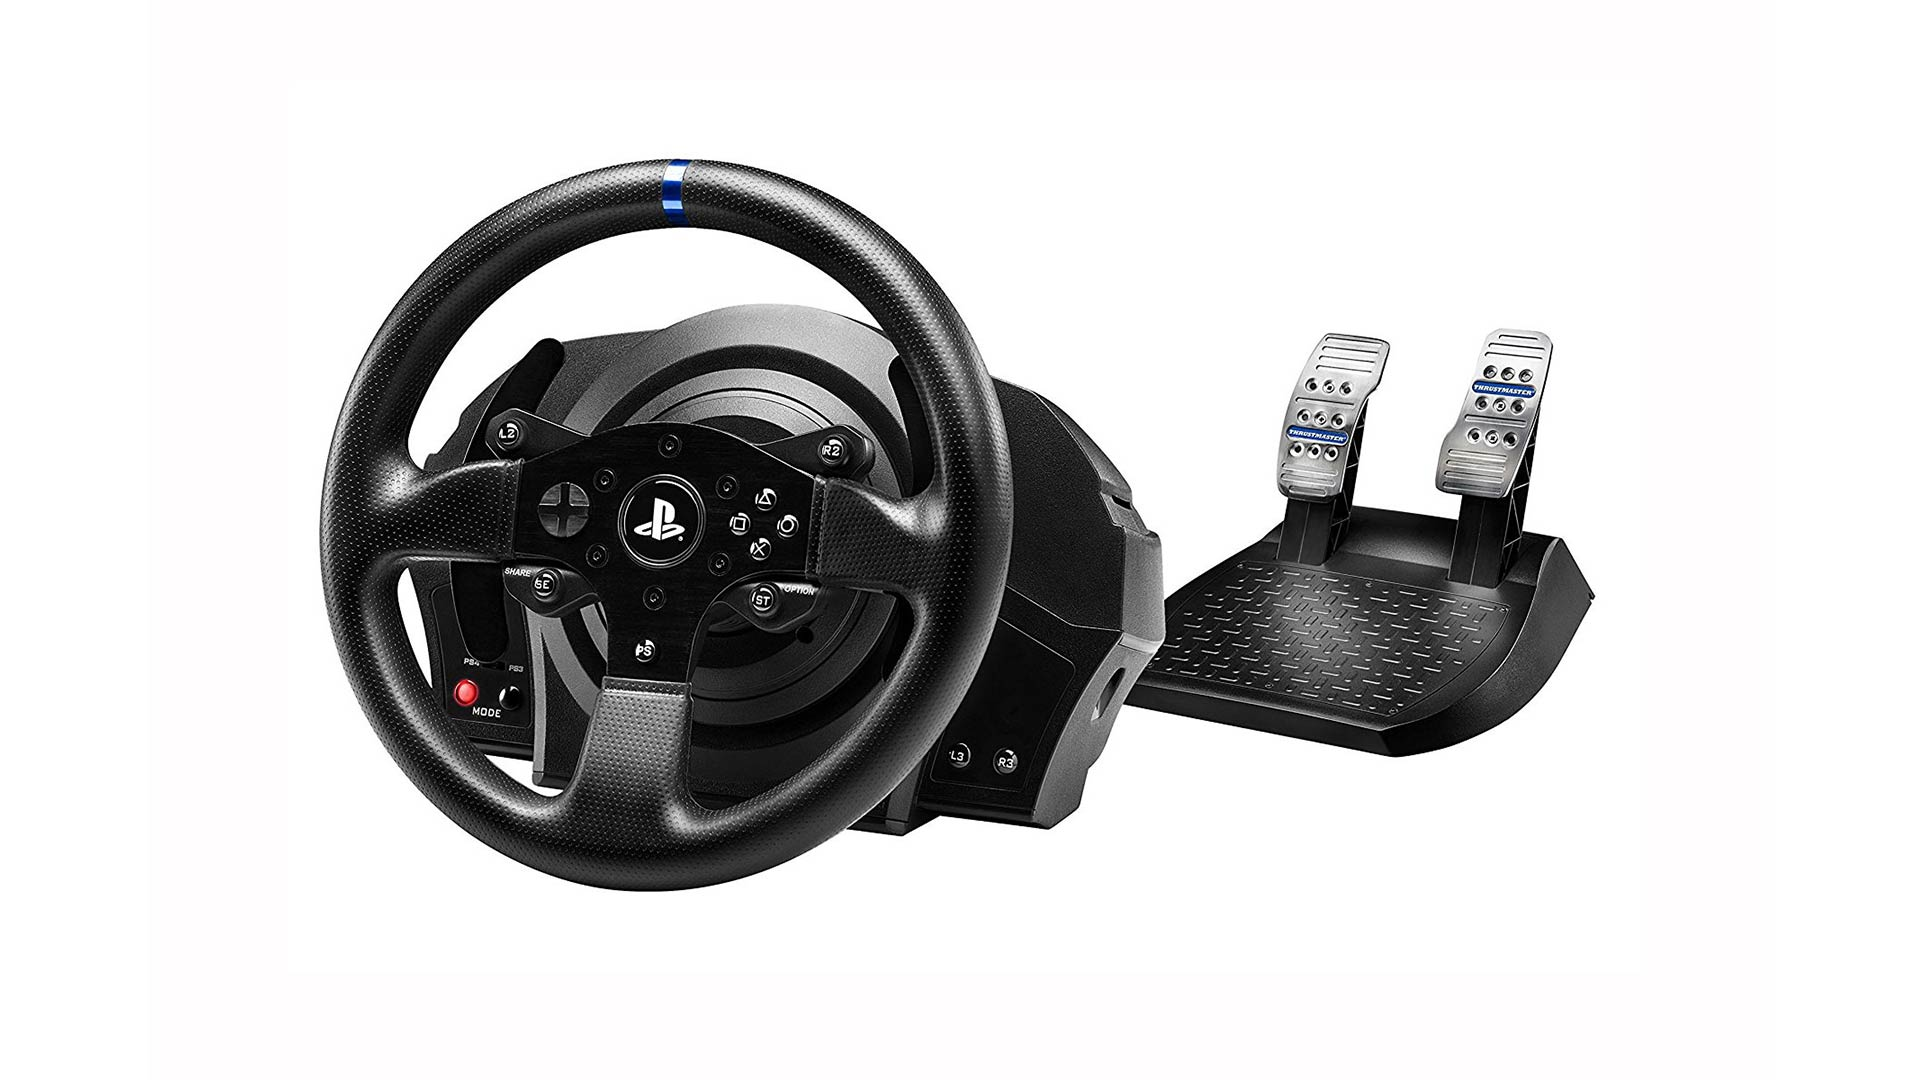 Thrustmaster steering wheel